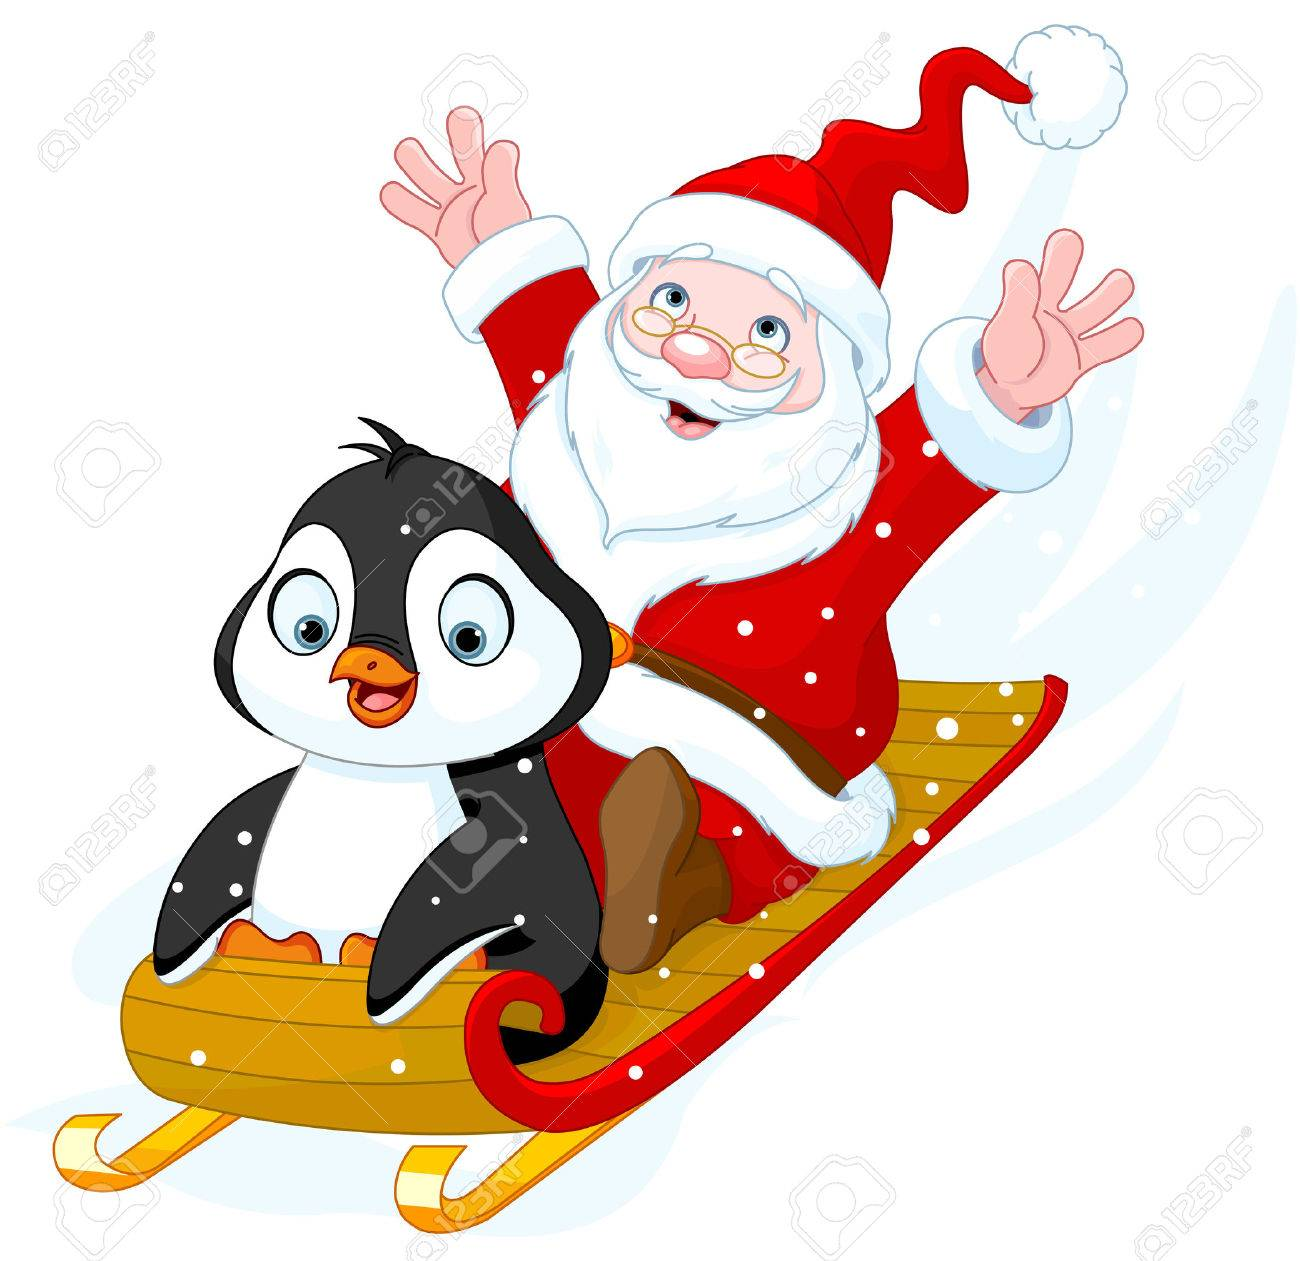 Illustration of Santa Claus and Penguin in sled Banque d'images - 46756124